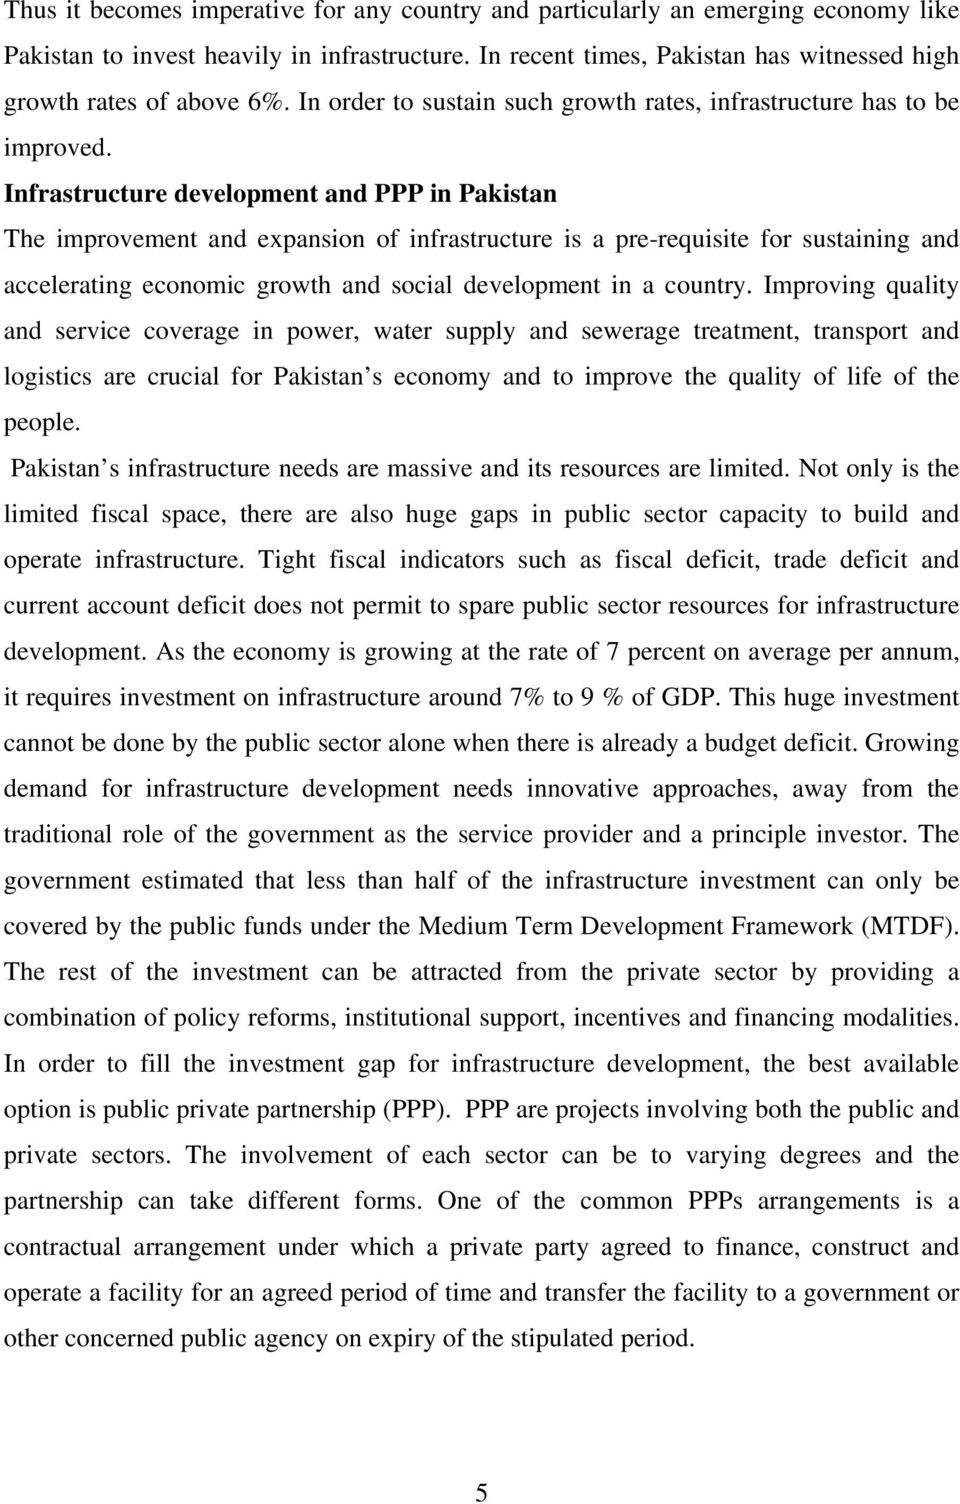 Infrastructure development and PPP in Pakistan The improvement and expansion of infrastructure is a pre-requisite for sustaining and accelerating economic growth and social development in a country.